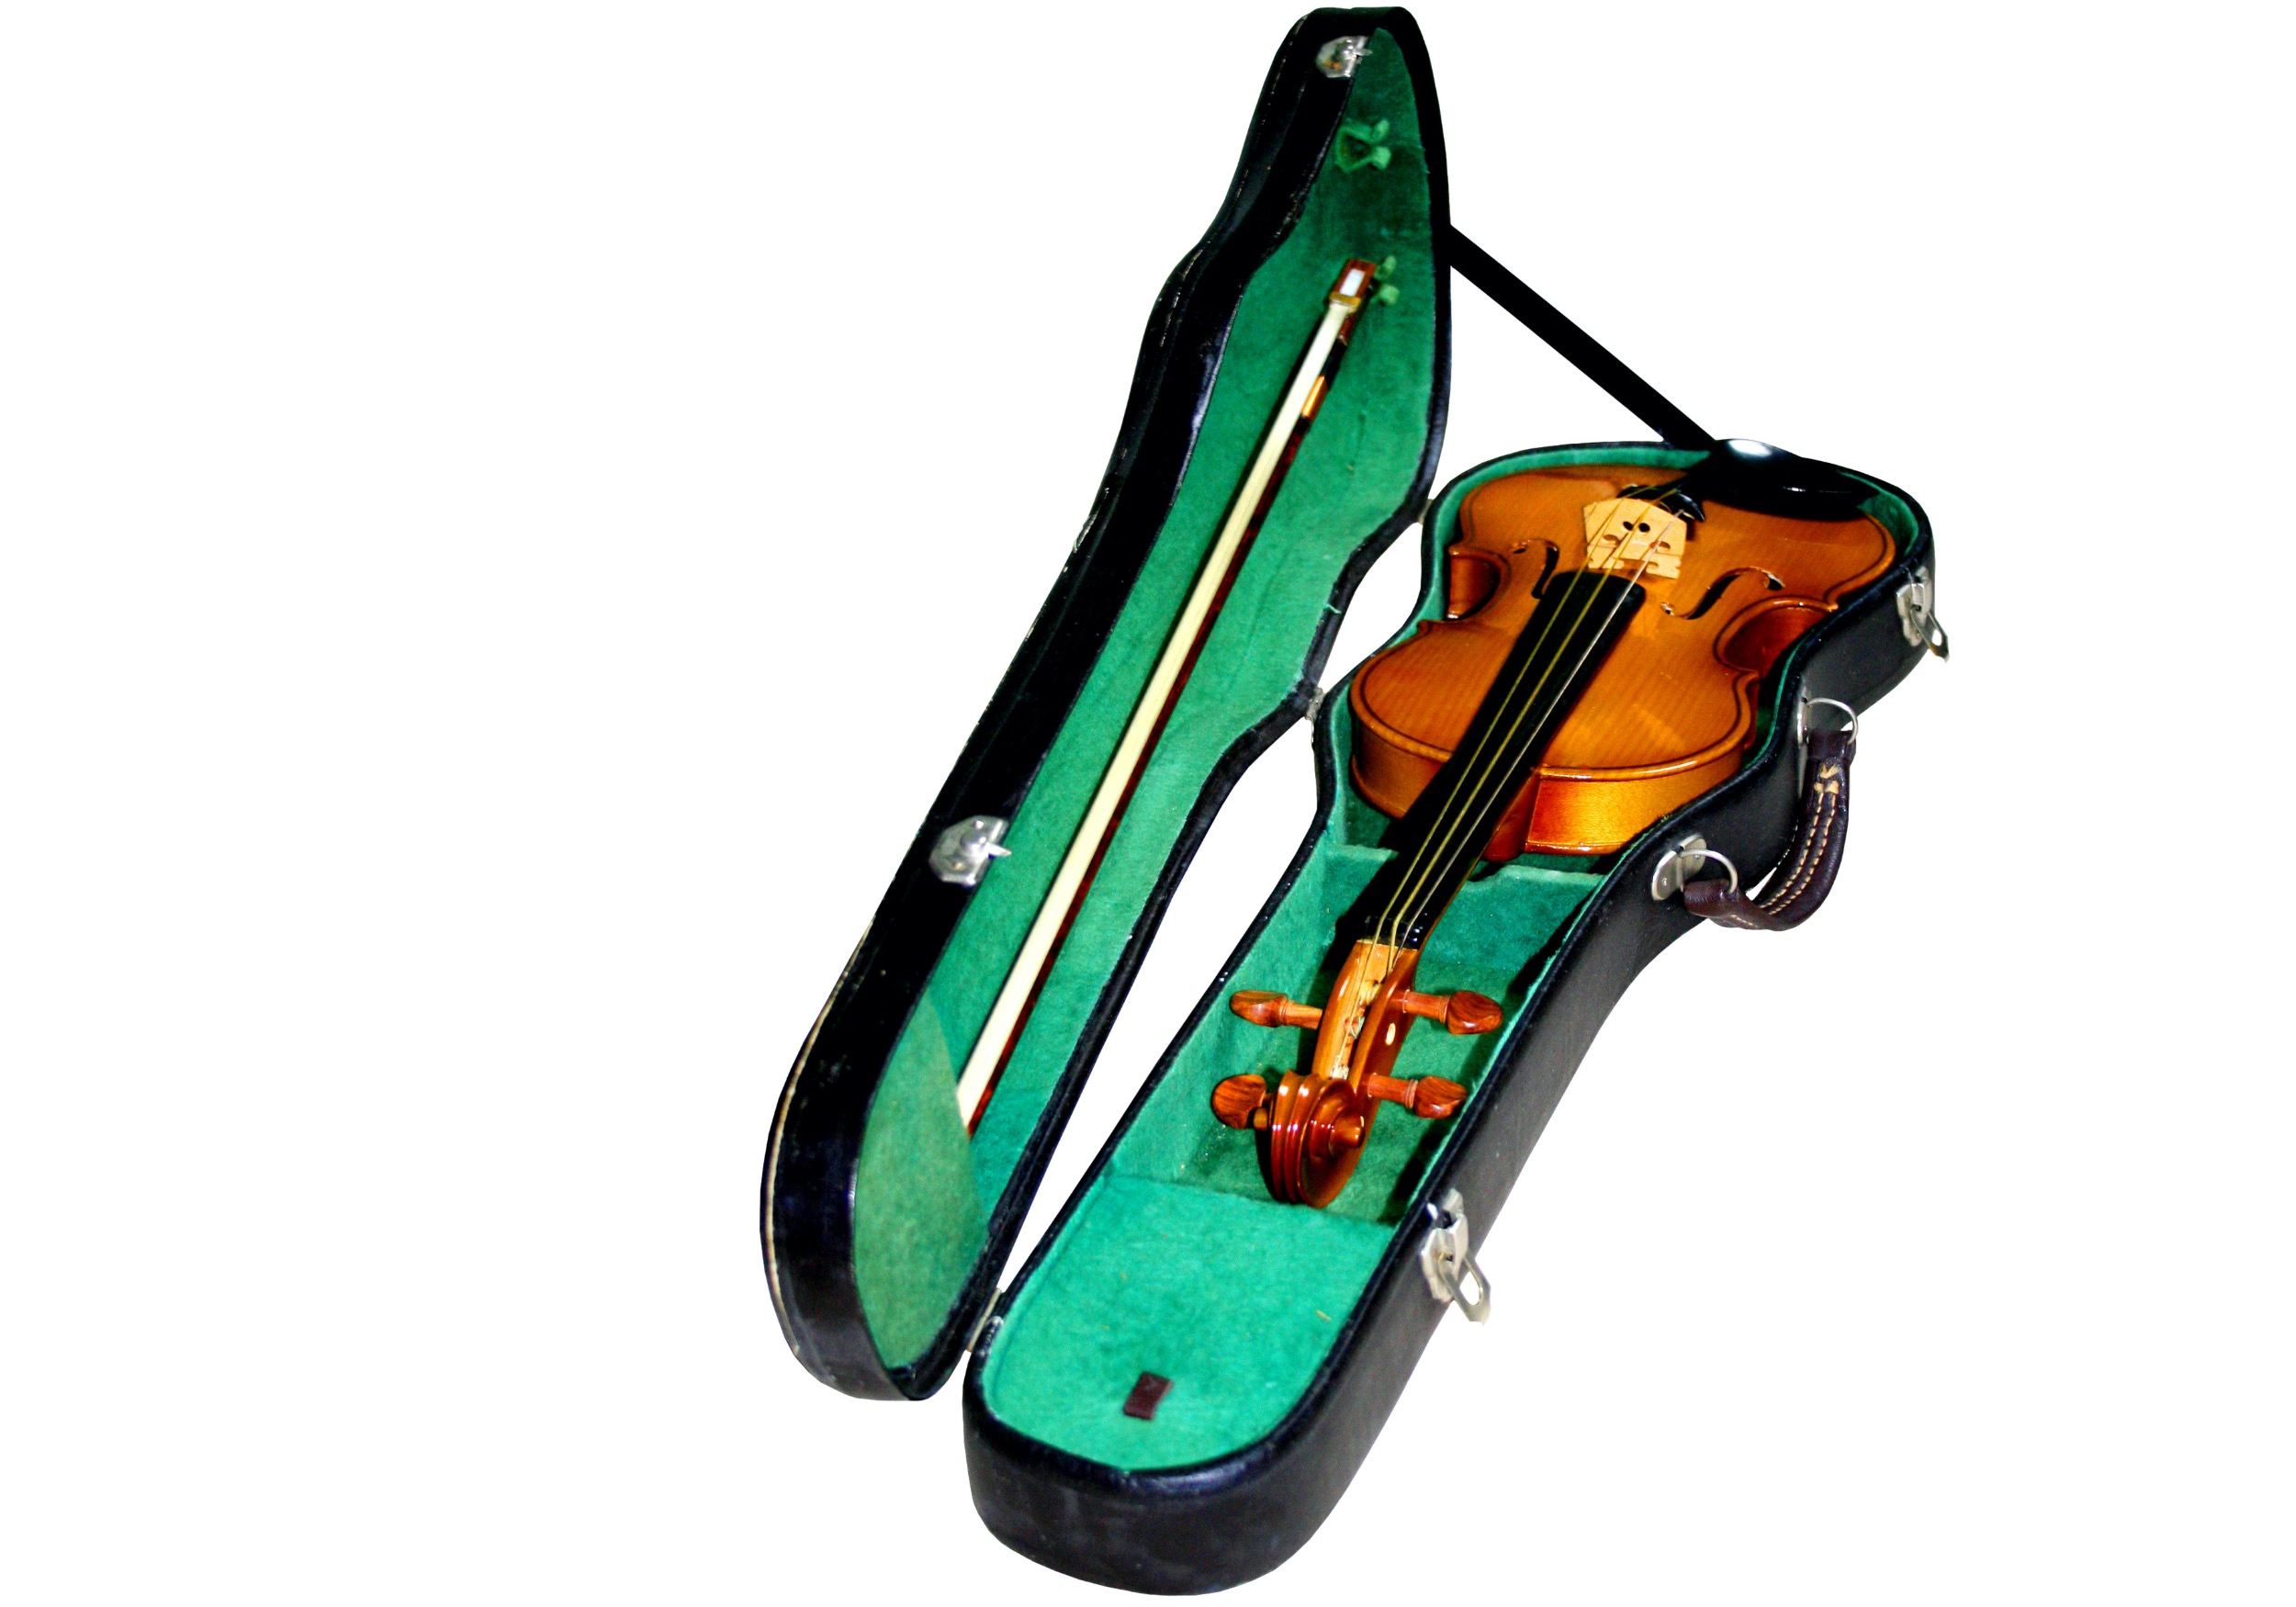 cheap, ugly violin in a case